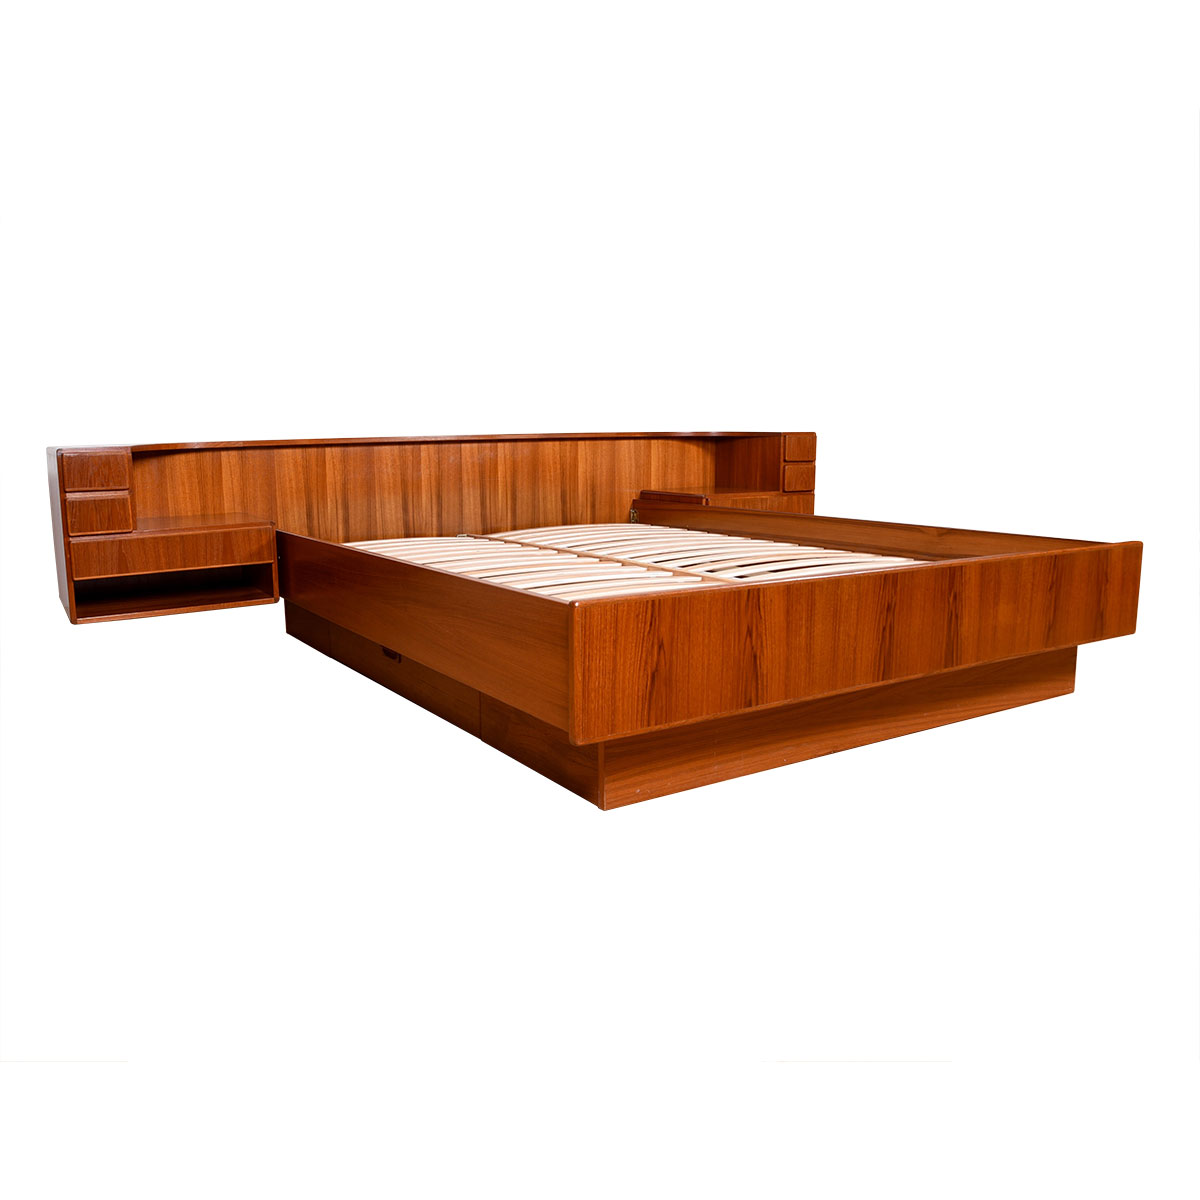 Queen Danish Teak Bed w/ Attached 3-Drawer Nightstands + Hidden Storage Drawers Below